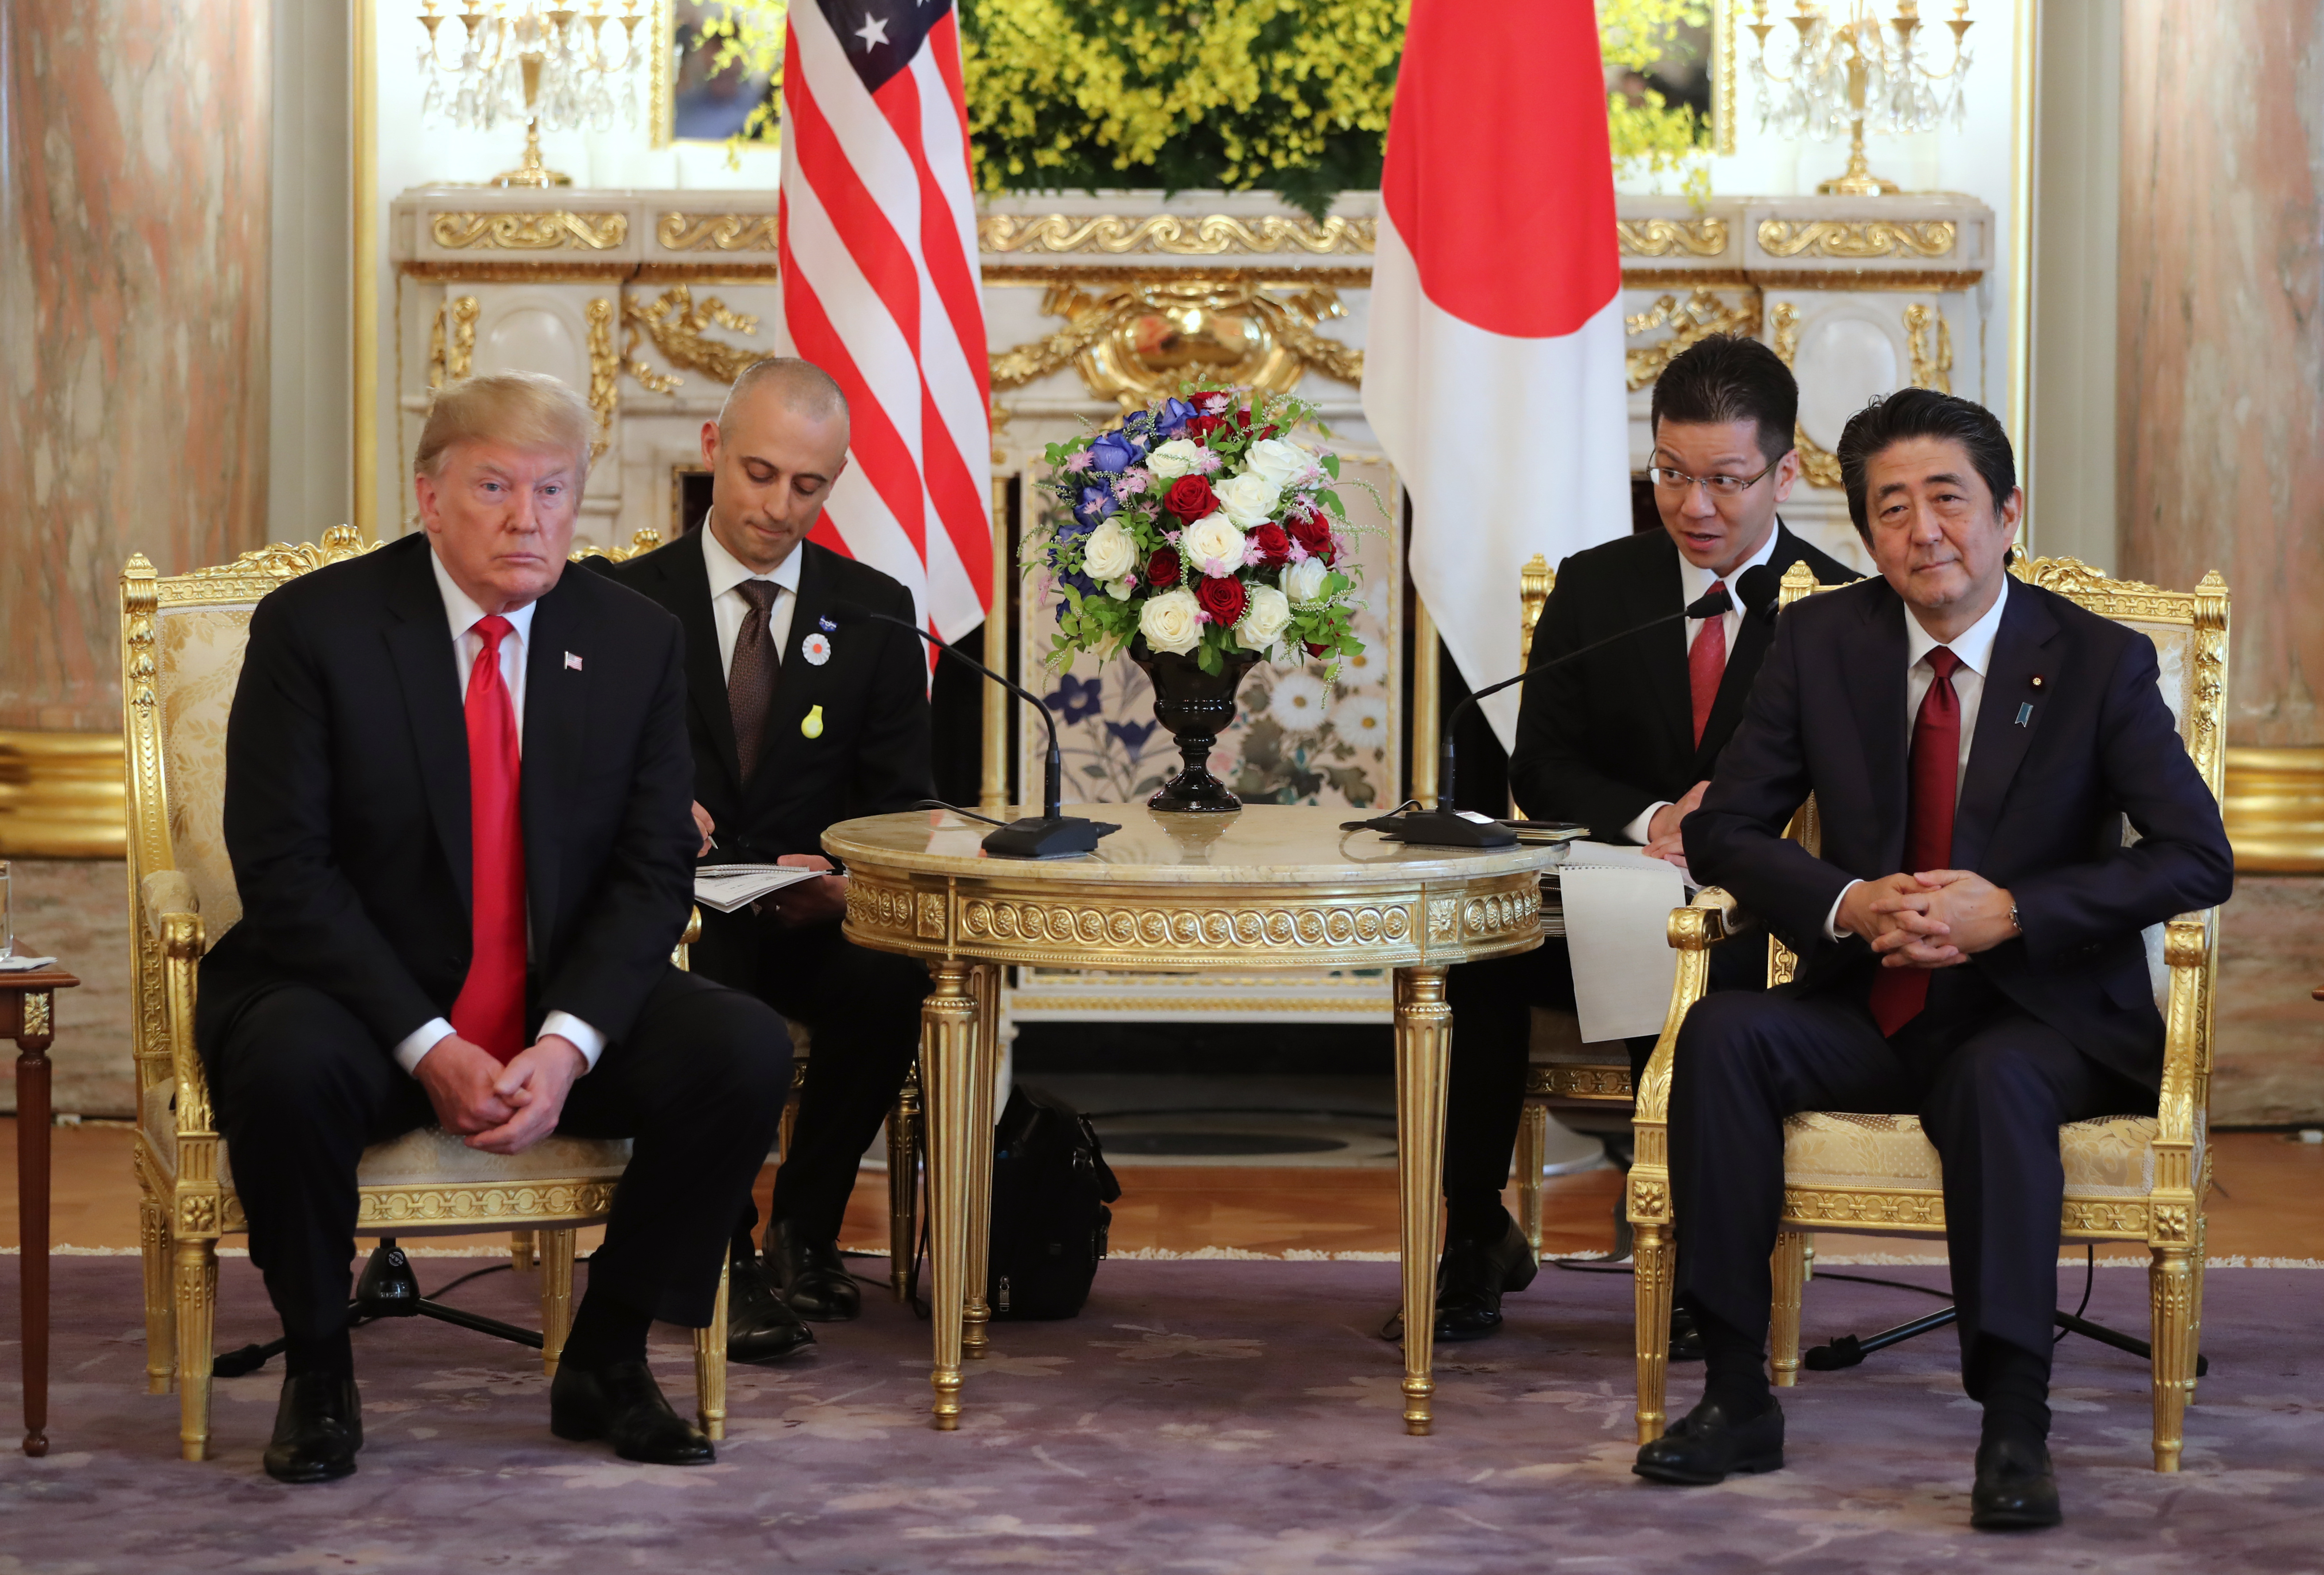 US President Donald Trump, left, and Japanese Prime Minister Shinzo Abe at Akasaka Palace on May 27, 2019 in Tokyo, Japan.